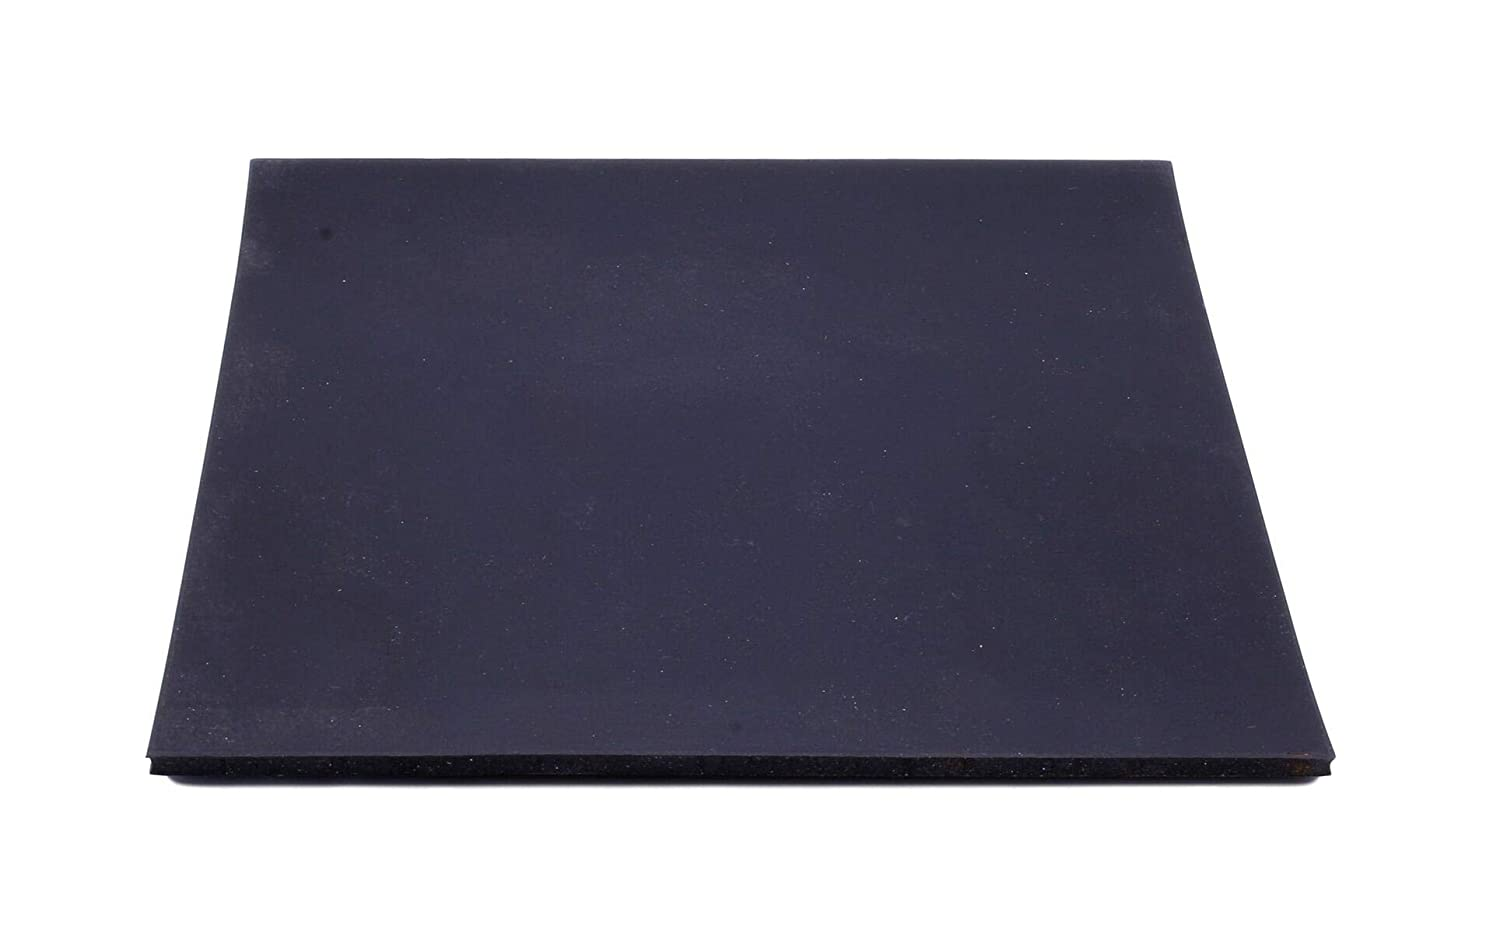 U-Turn Fasteners - Nitrile Rubber Sheet 1/8 Thick - 6 x 6 inch (NBR) Buna-N Rubber Gasket Material (2 Sheets)